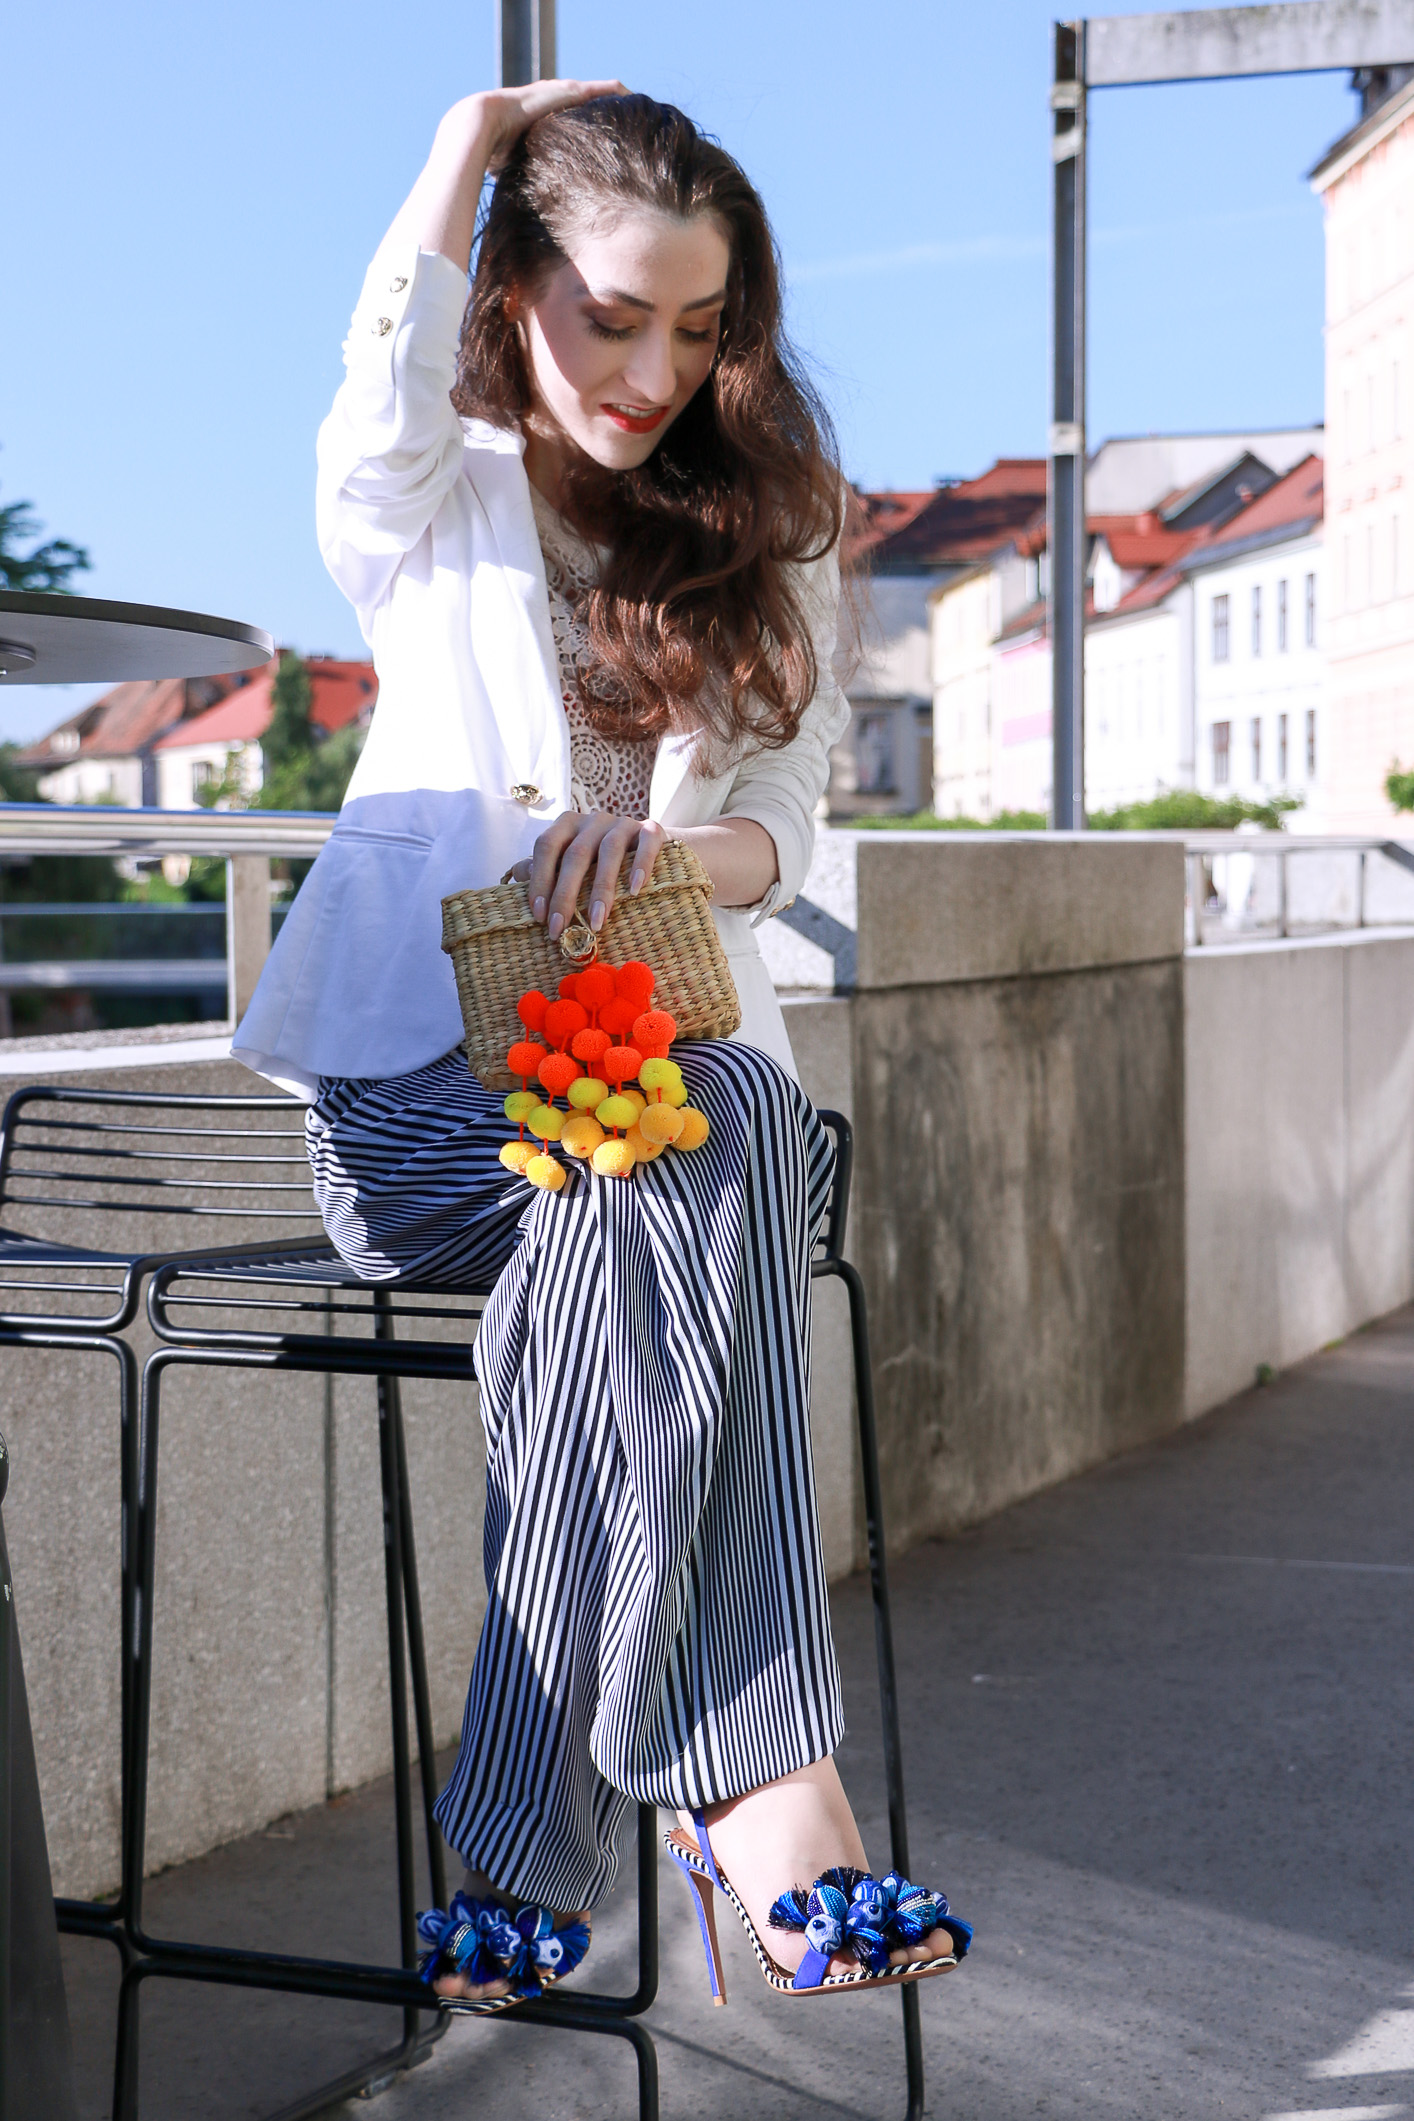 Fashion blogger Veronika Lipar of Brunette From Wall Street sharing her chic spring summer style